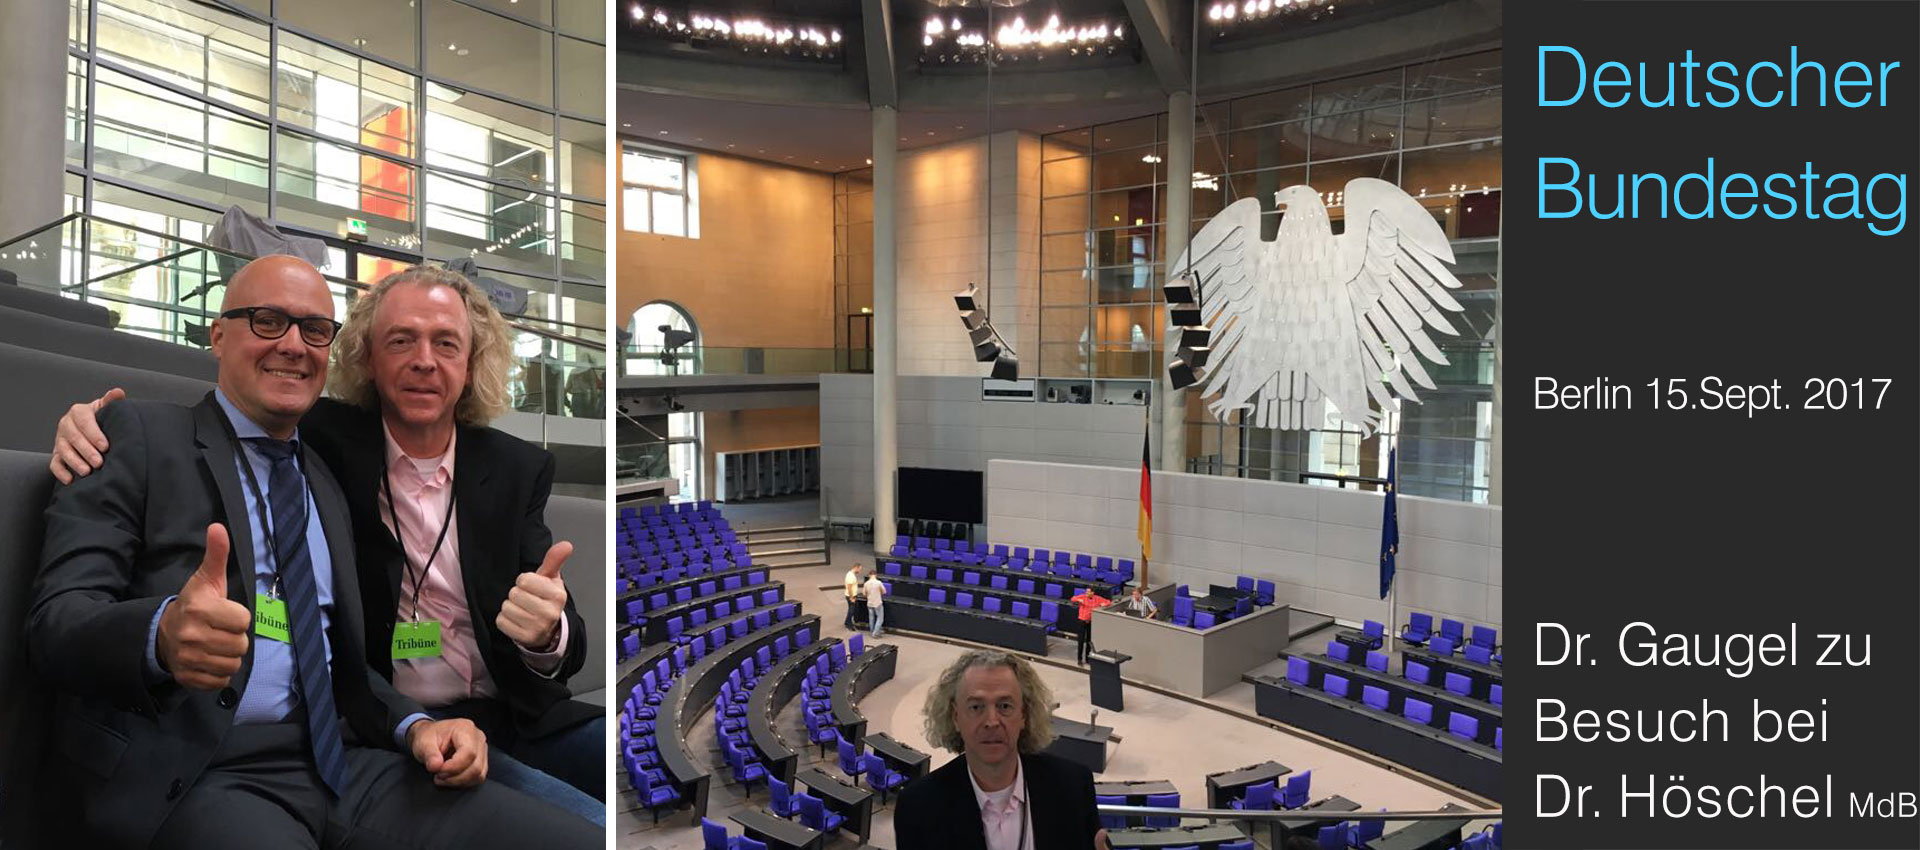 Dr. Gaugel im Bundestag, Berlin